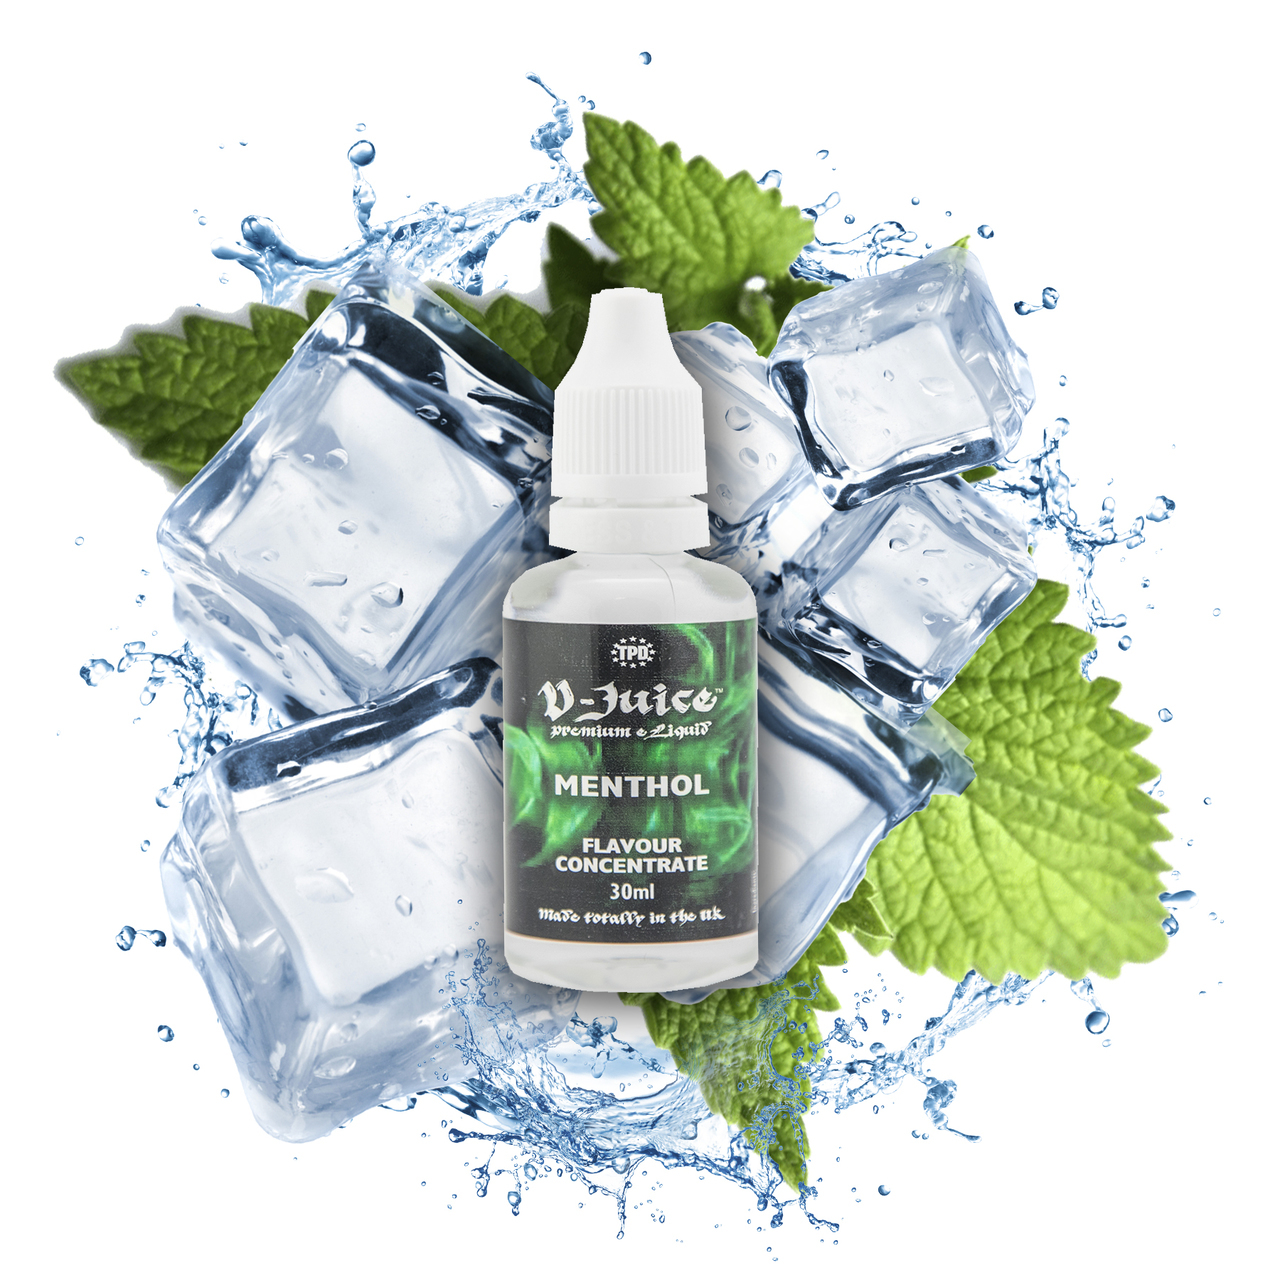 Menthol Flavour Concentrate by V-Juice